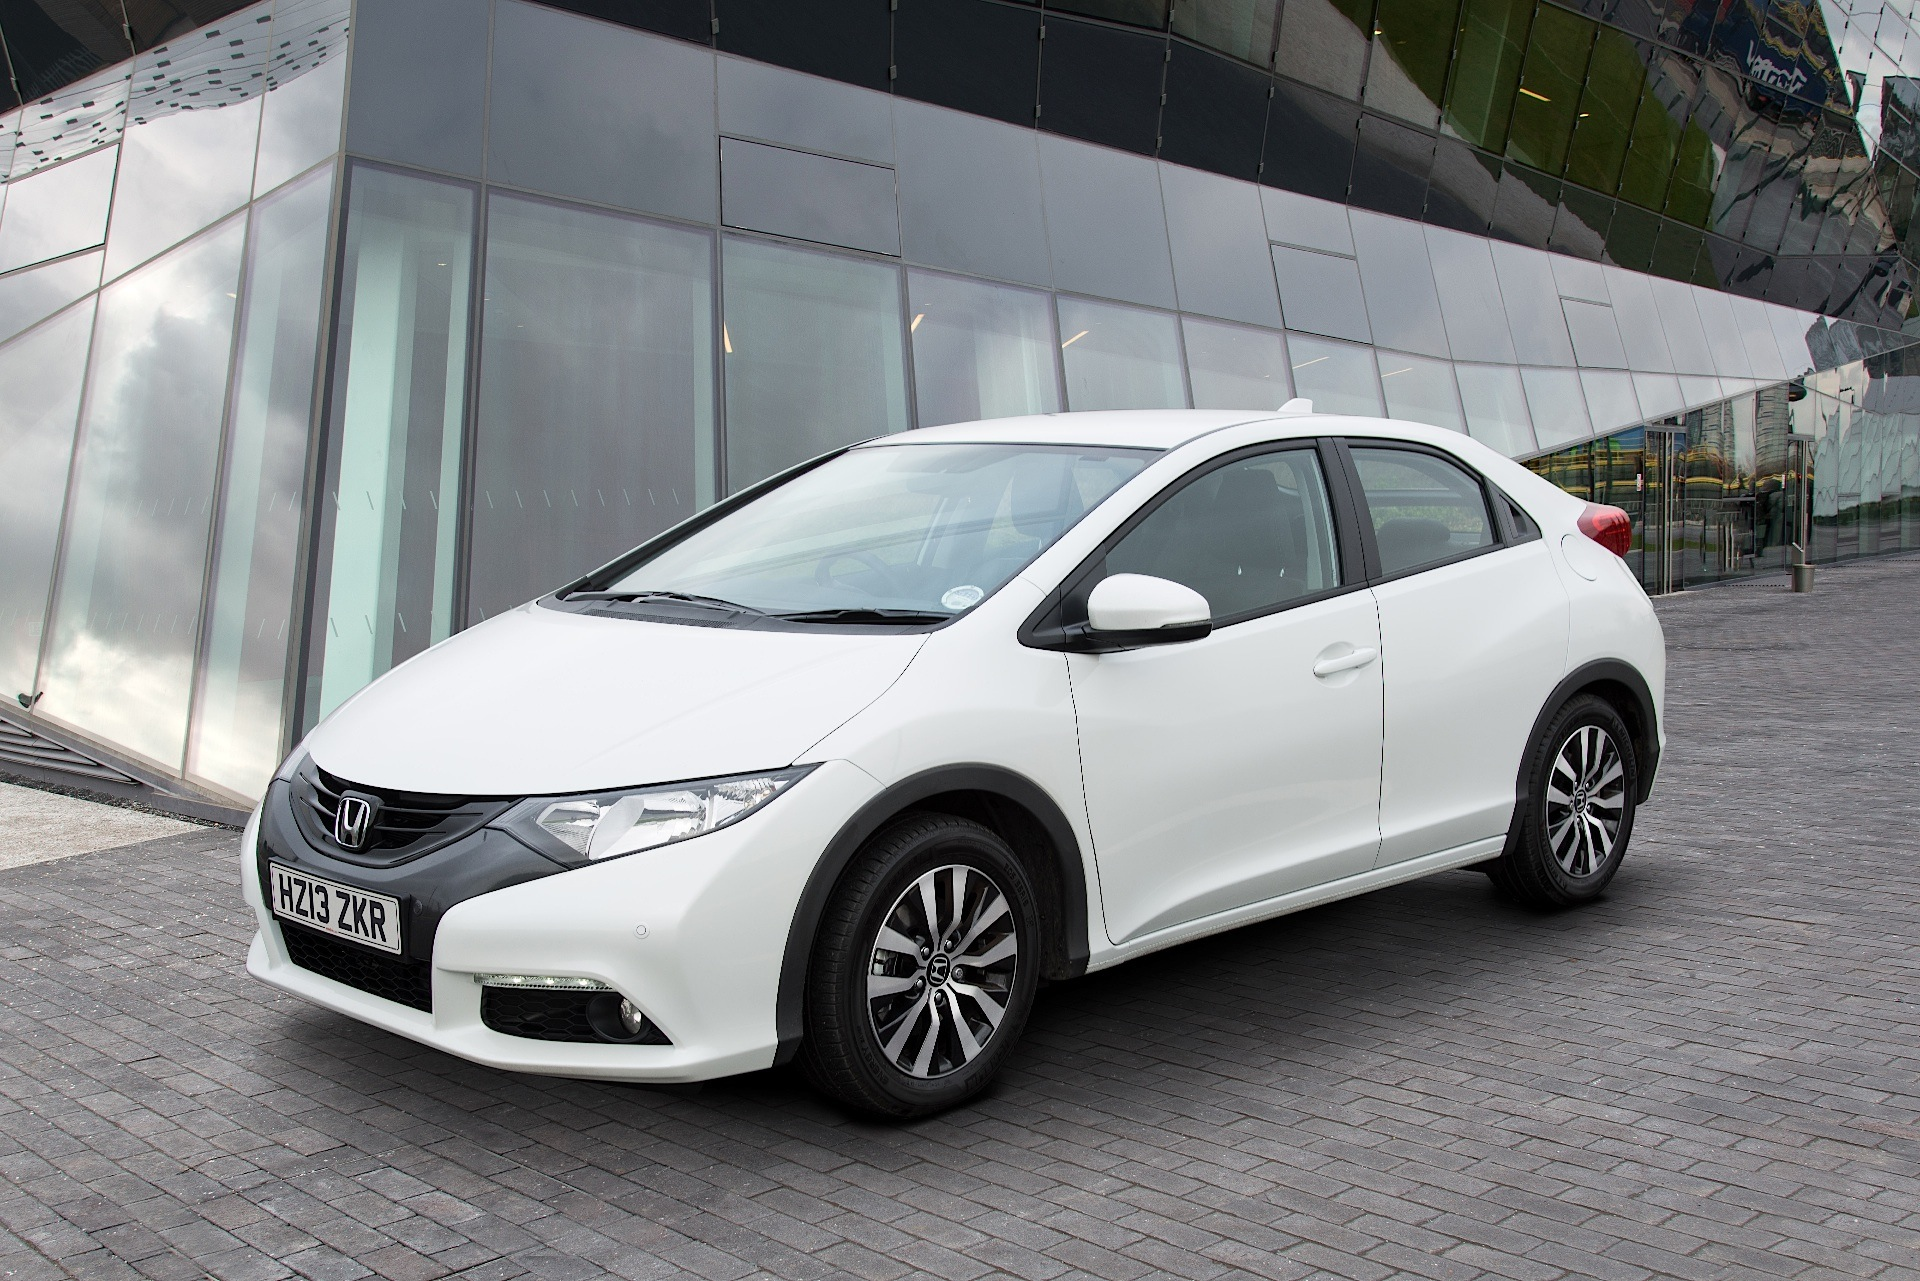 ... HONDA Civic 5 Doors (2012 - 2015) ...